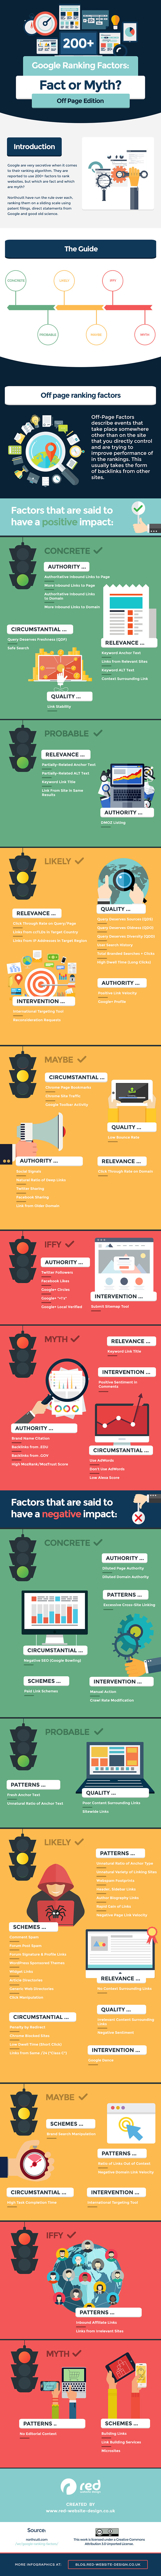 Google's Off Page Ranking Factors: Are They Fact Or Myth? - #infographic #Searchengineoptimization